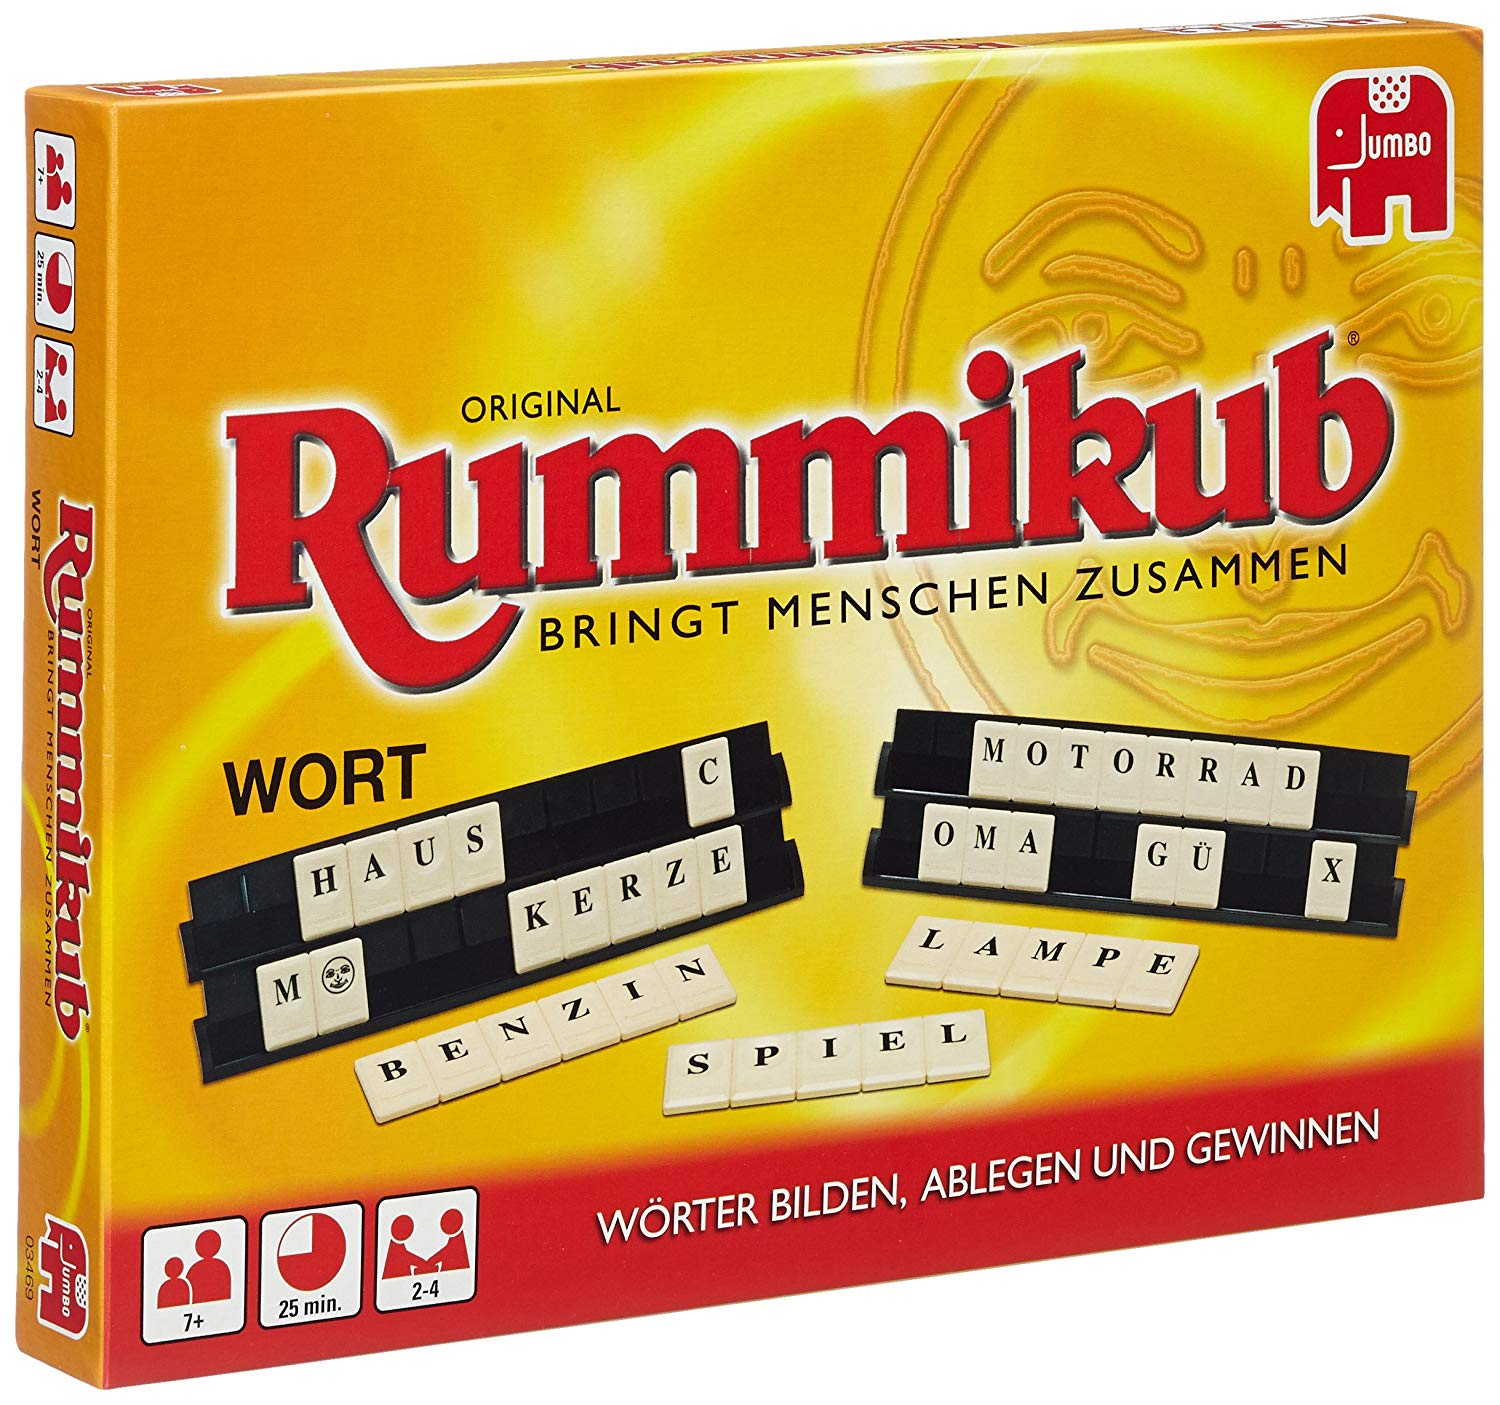 Disney Jumbo 03469 Wort Rummikub Game (in German)